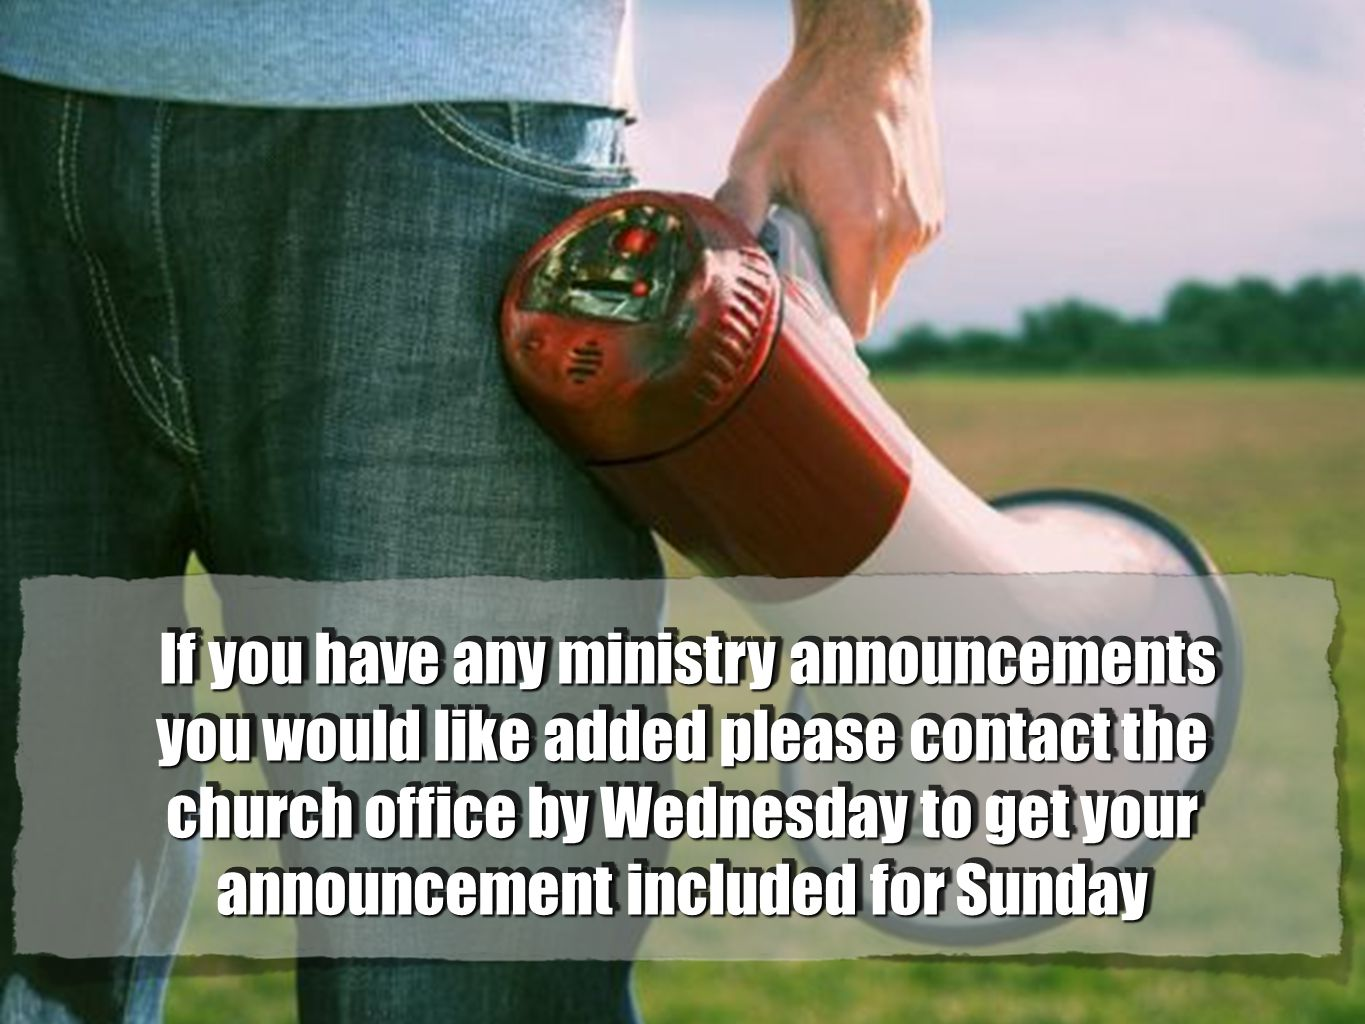 ANNOUNCEMENTSANNOUNCEMENTS If you have any ministry announcements you would like added please contact the church office by Wednesday to get your annou